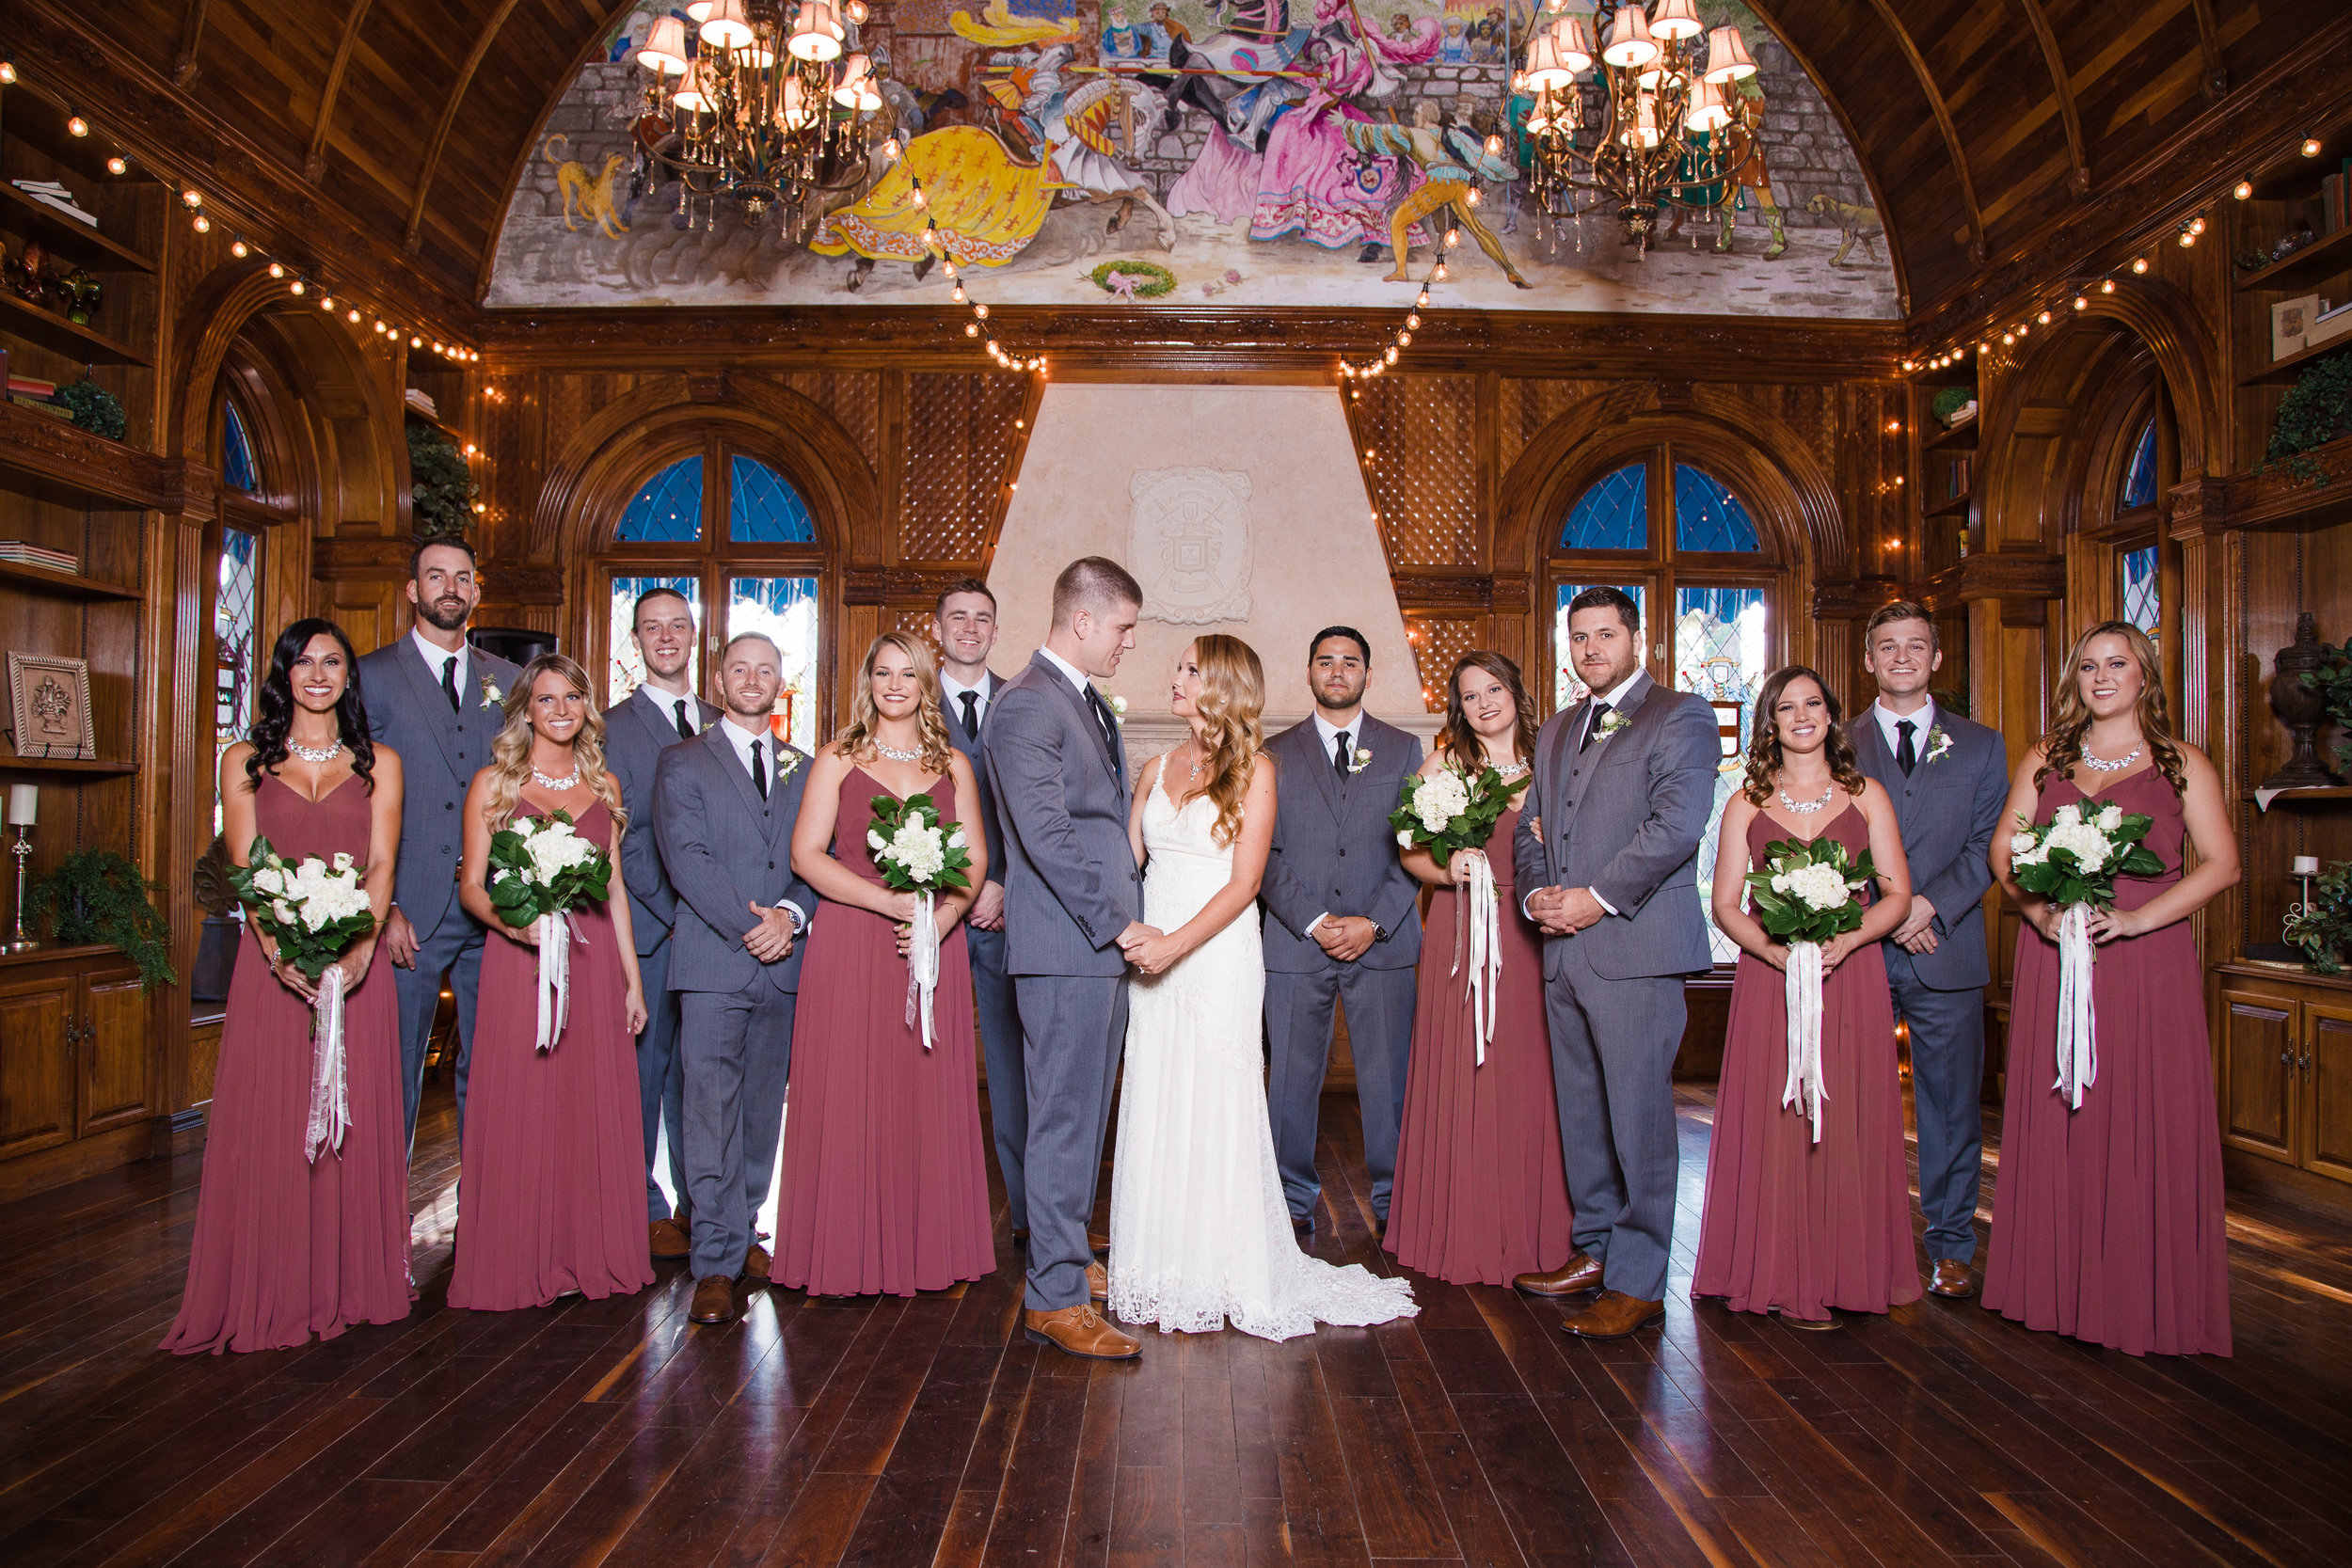 Wedding party at the Chateau de View